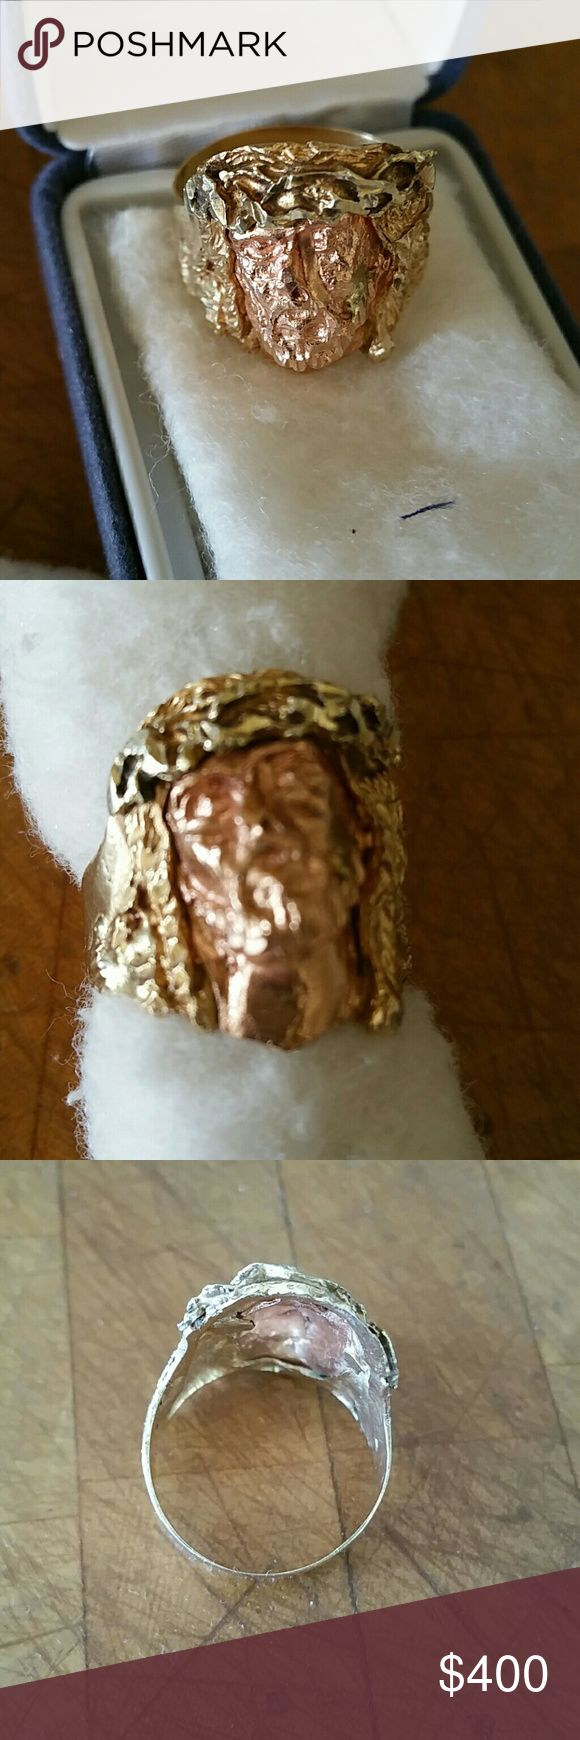 10K, GOLD JESUS CHRIST RING WITH THORN CROWN 10K, JESUS CHRIST RING WITH THORN CROWN,  SIZE 111/2, WEIGHT 4.9 DWT., ESTIMATED REPLACEMENT VALUE- TAX INCLUDED 600.00, RESALE VALUE 400.00,  ASKING 400.00 FOR RING. BLACK HILLS GOLD Jewelry Rings